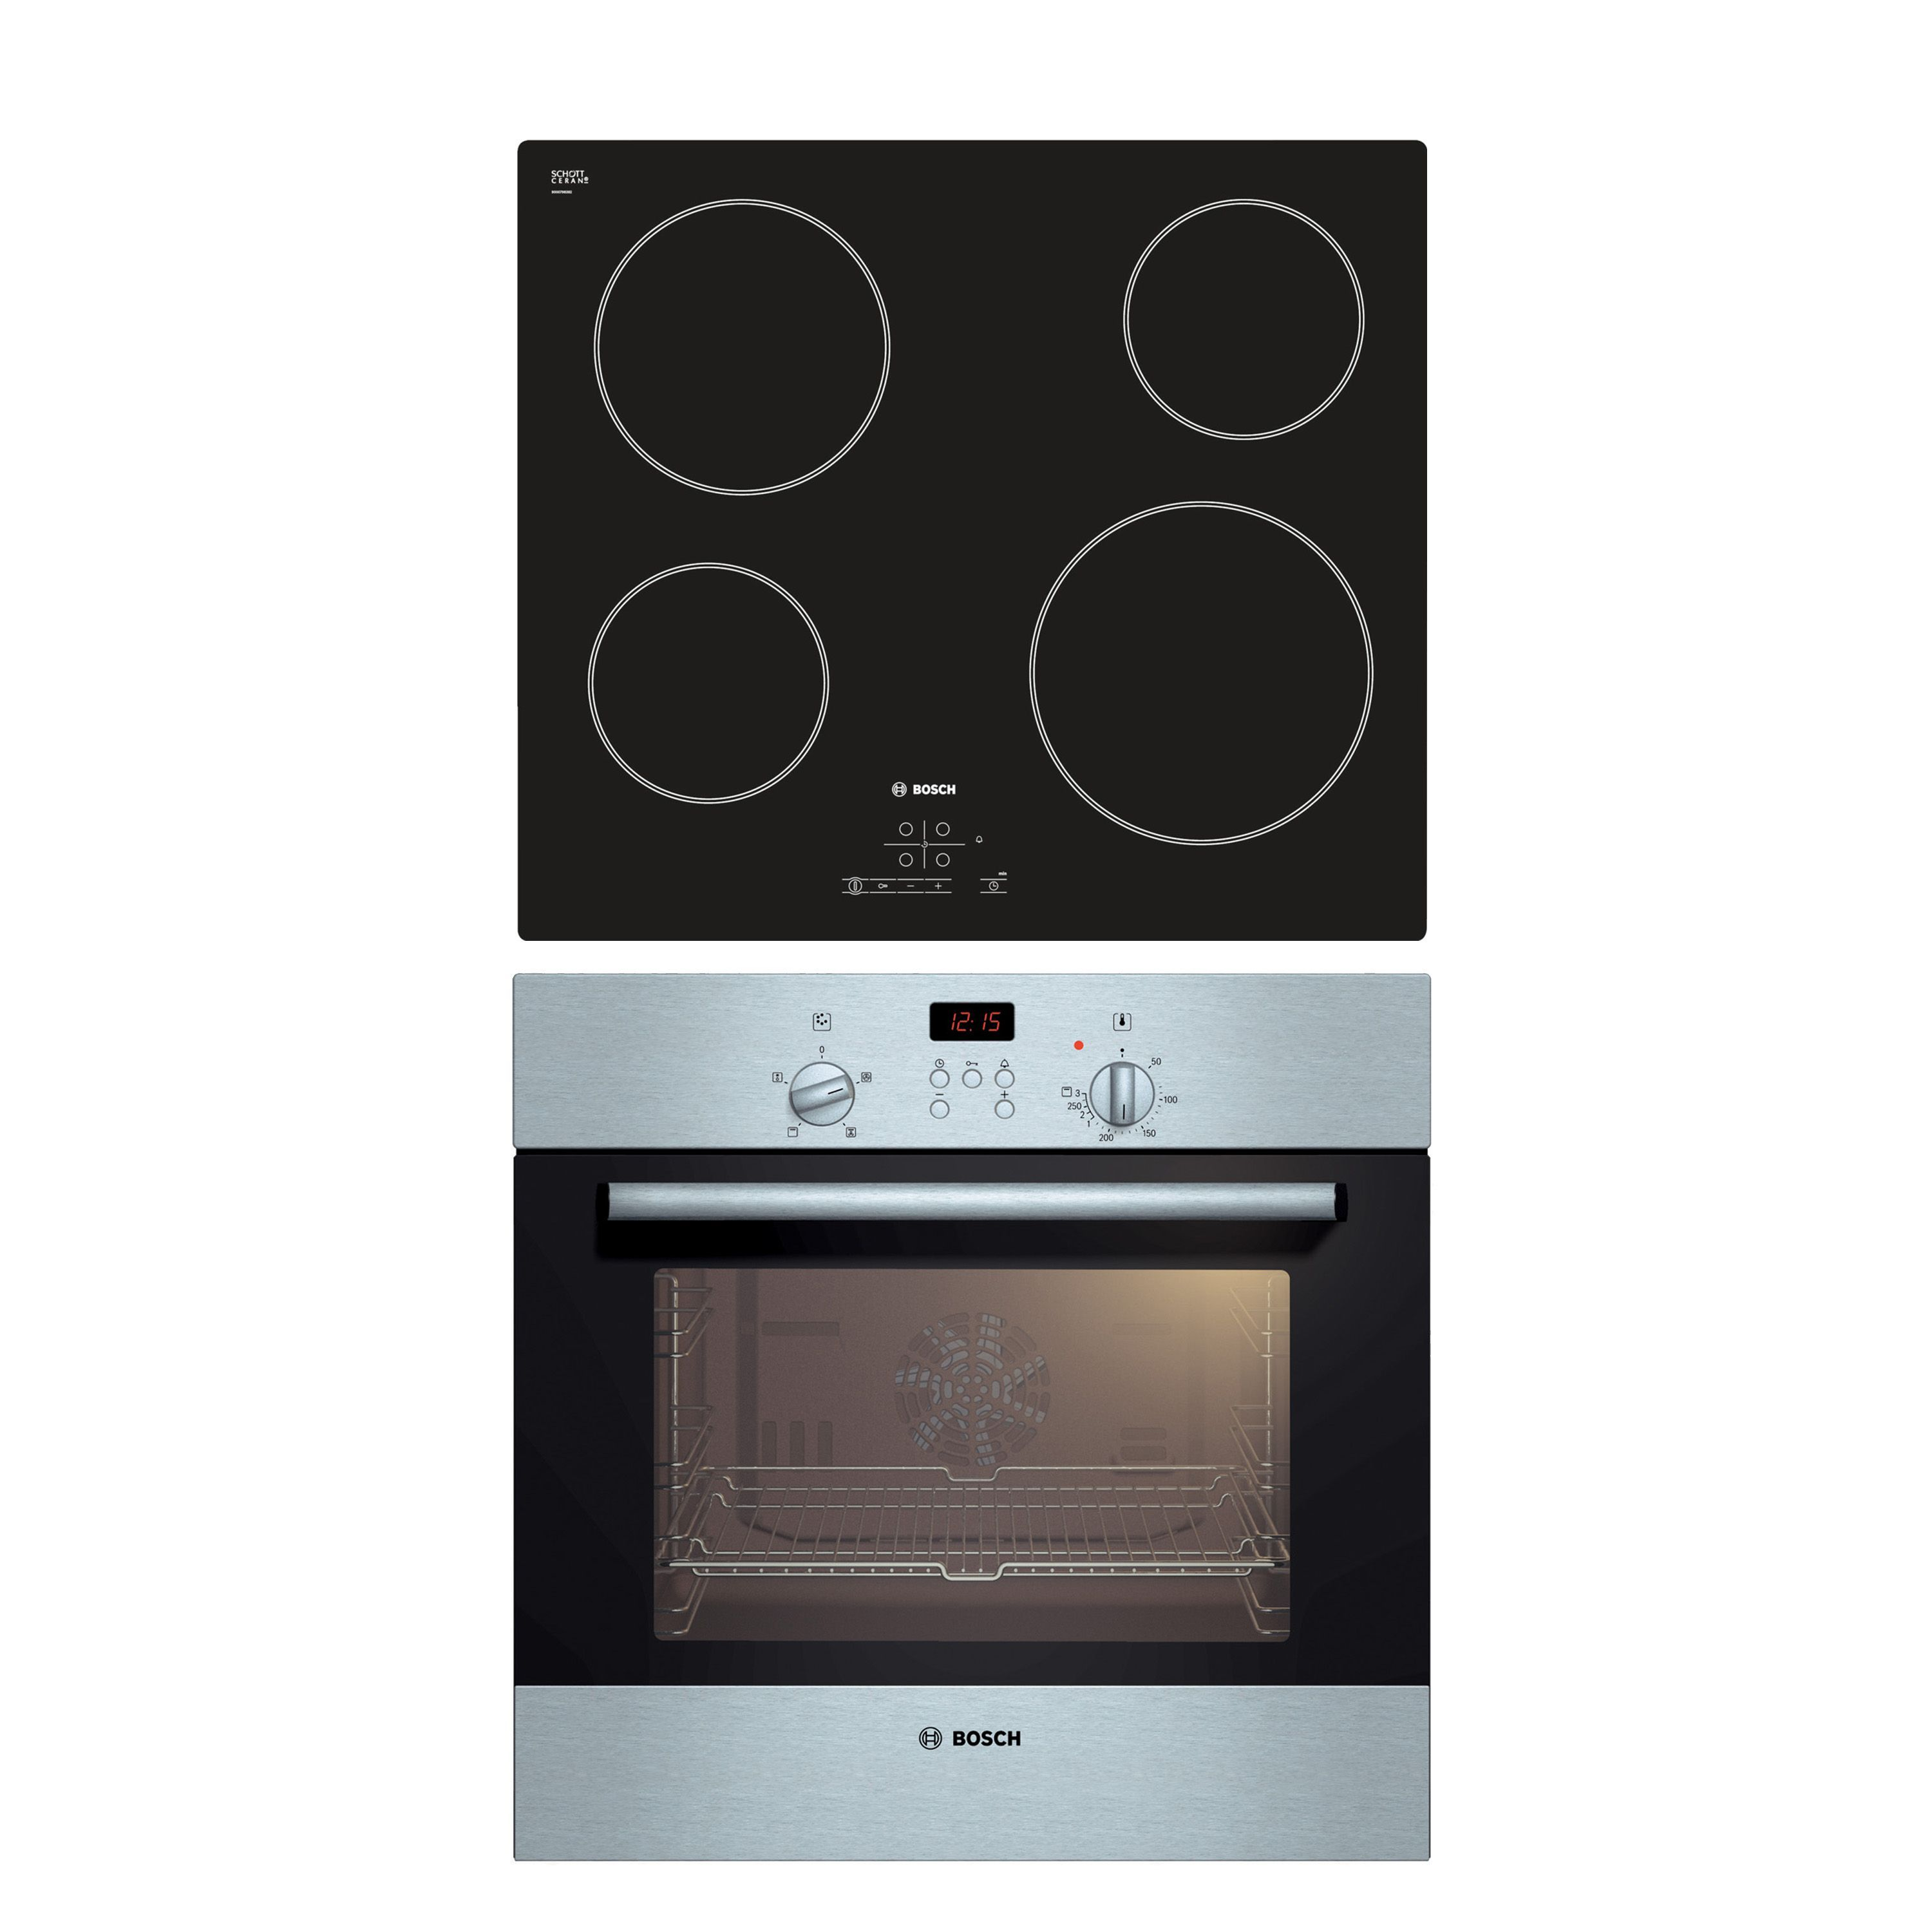 Single Fan Oven Part - 32: Bosch U0026 Black Single Fan Oven U0026 Ceramic Hob Pack - Bu0026Q For All Your Home  And Garden Supplies And Advice On All The Latest DIY Trends